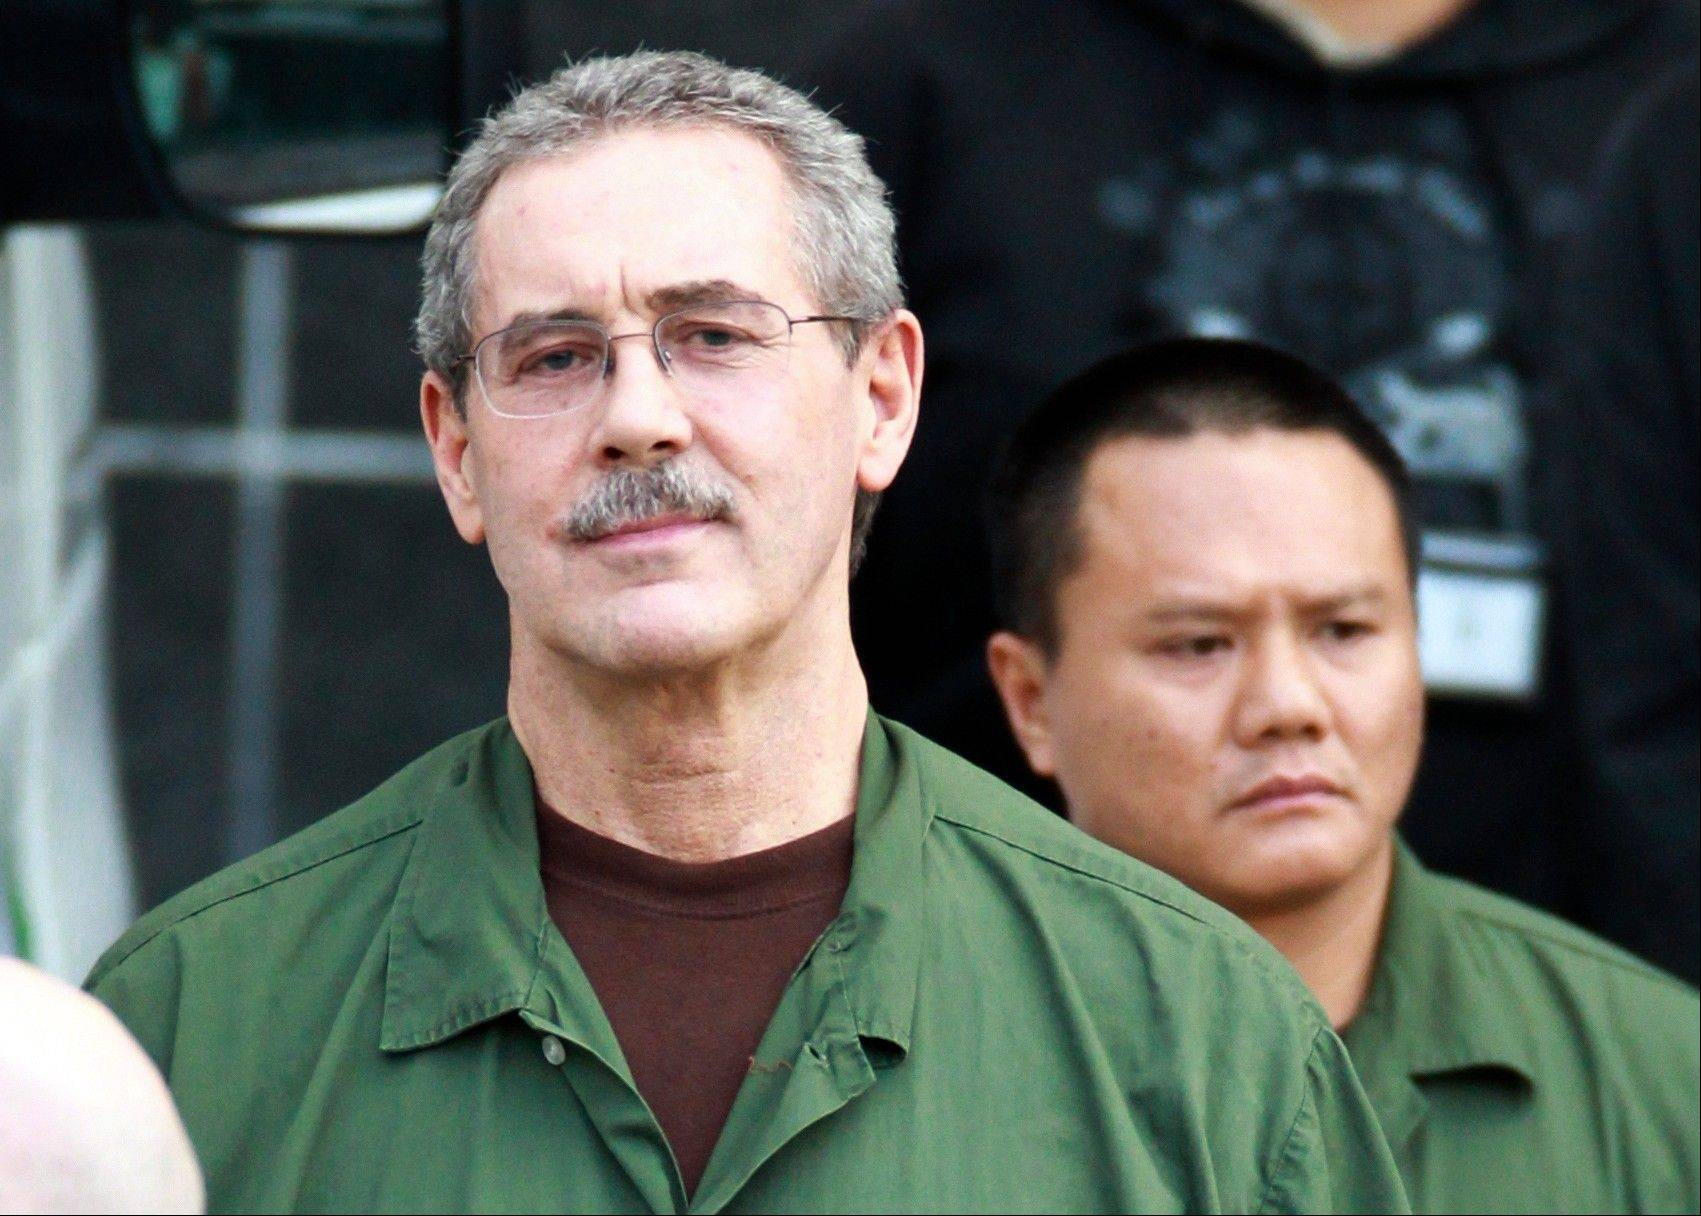 R. Allen Stanford leaves the Bob Casey Federal Courthouse in Houston on March 6. Stanford, once considered one of the wealthiest people in the U.S., with a financial empire that spanned the Americas, was convicted on charges he bilked investors out of more than $7 billion.